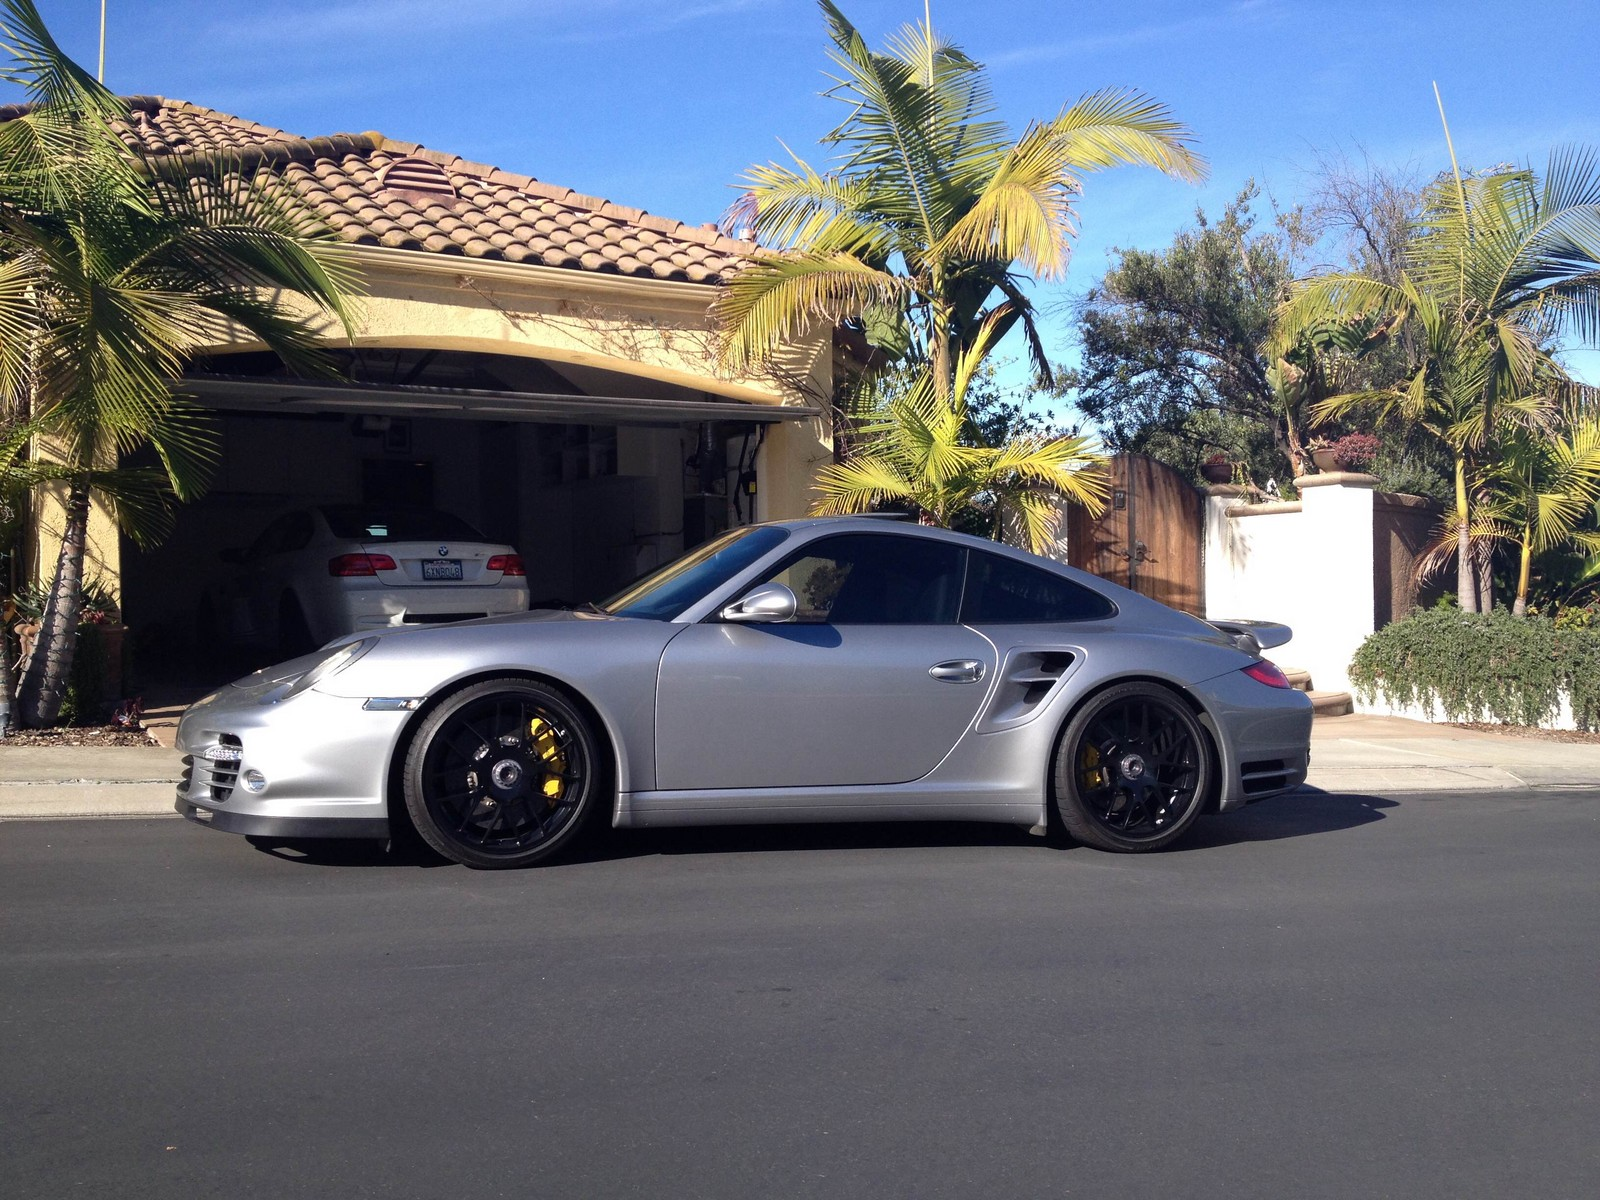 2011 gt silver metallic porsche 911 turbo s pictures mods upgrades wallpaper. Black Bedroom Furniture Sets. Home Design Ideas